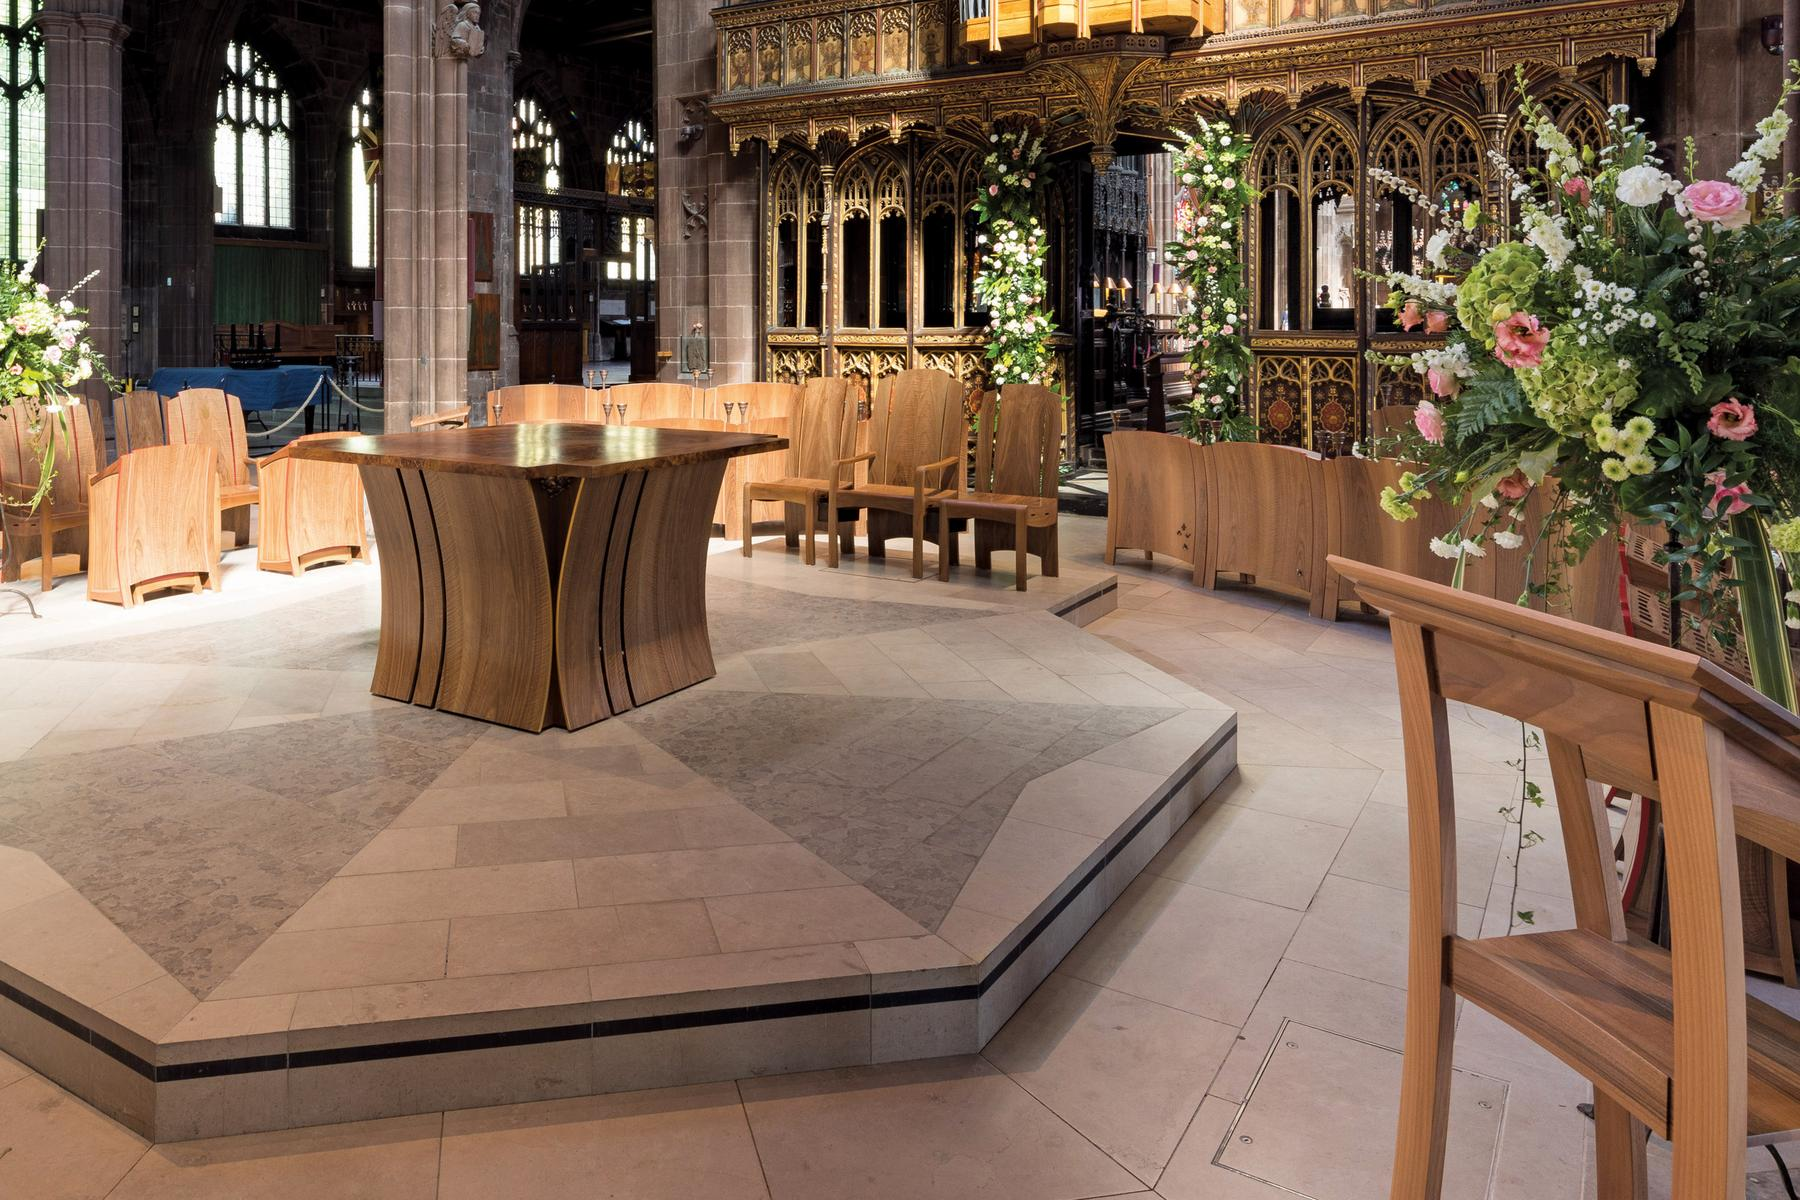 Manchester Cathedral 1